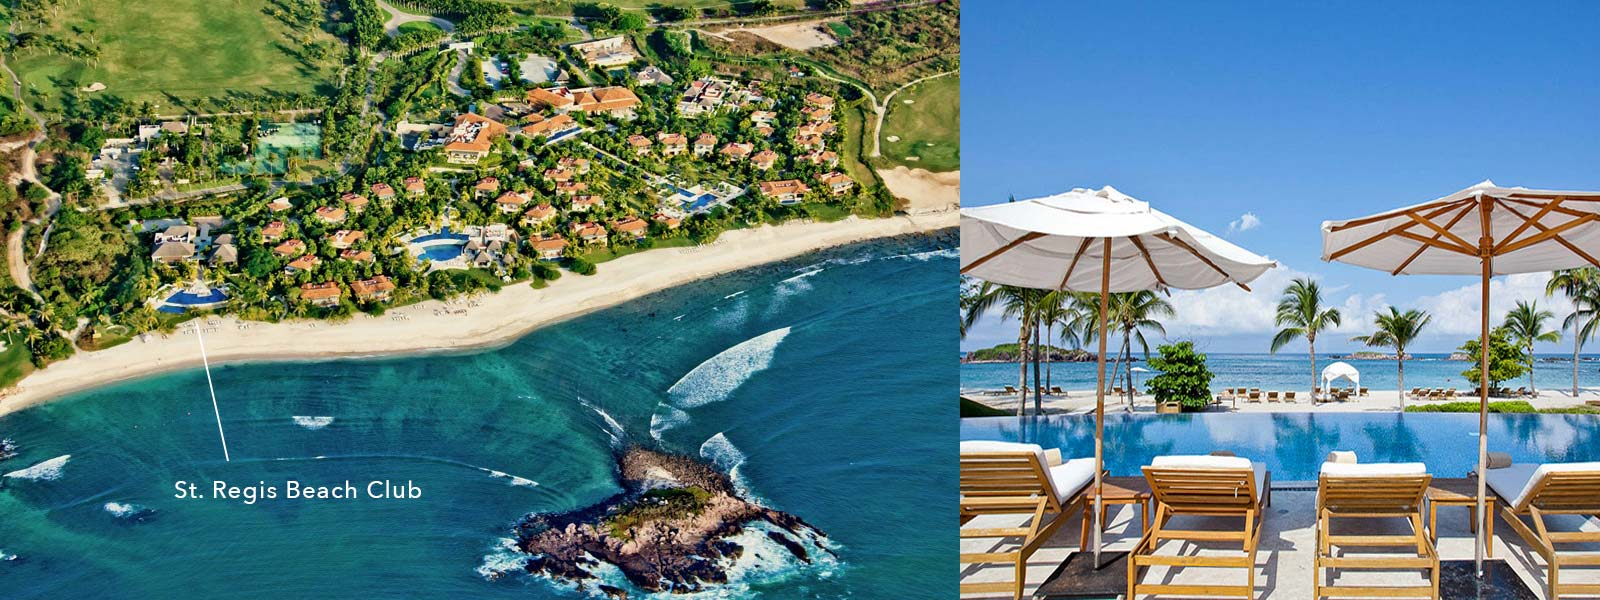 The St. Regis Beach Club offers special access to owners and their guests to Punta Mita.